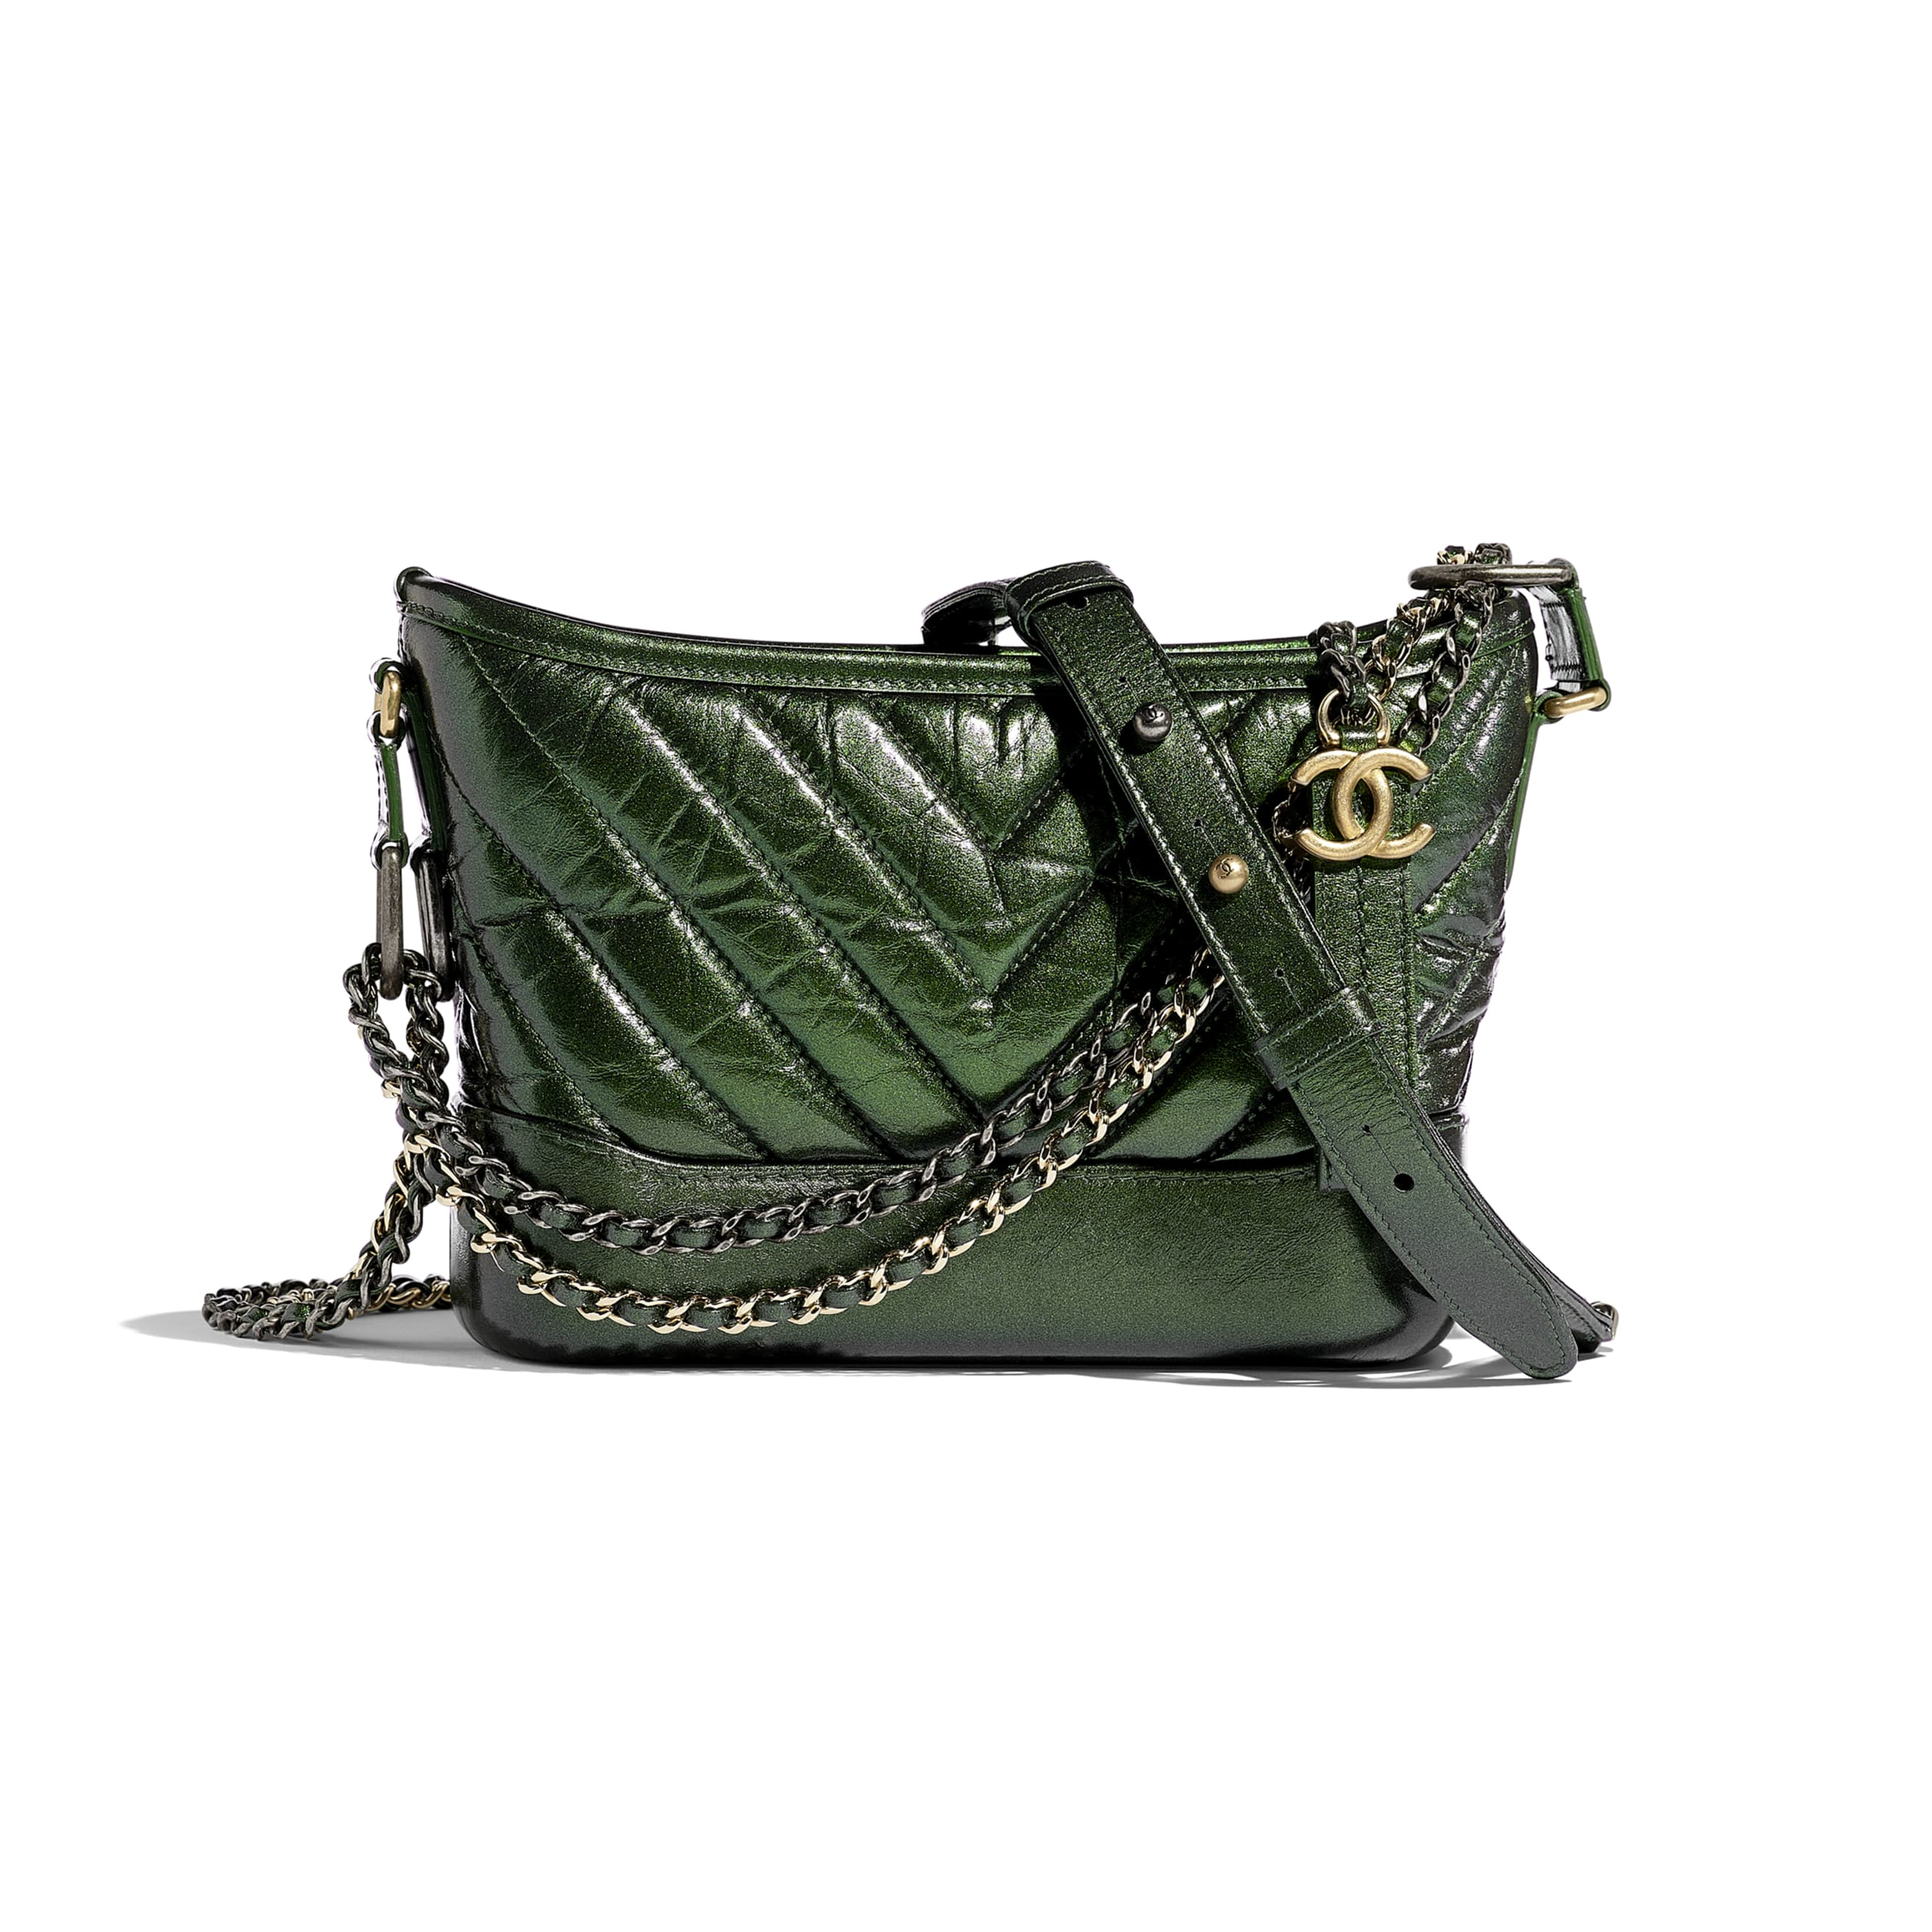 CHANEL'S GABRIELLE Small Hobo Bag - Green - Aged Calfskin, Silver-Tone & Gold-Tone Metal - Default view - see standard sized version